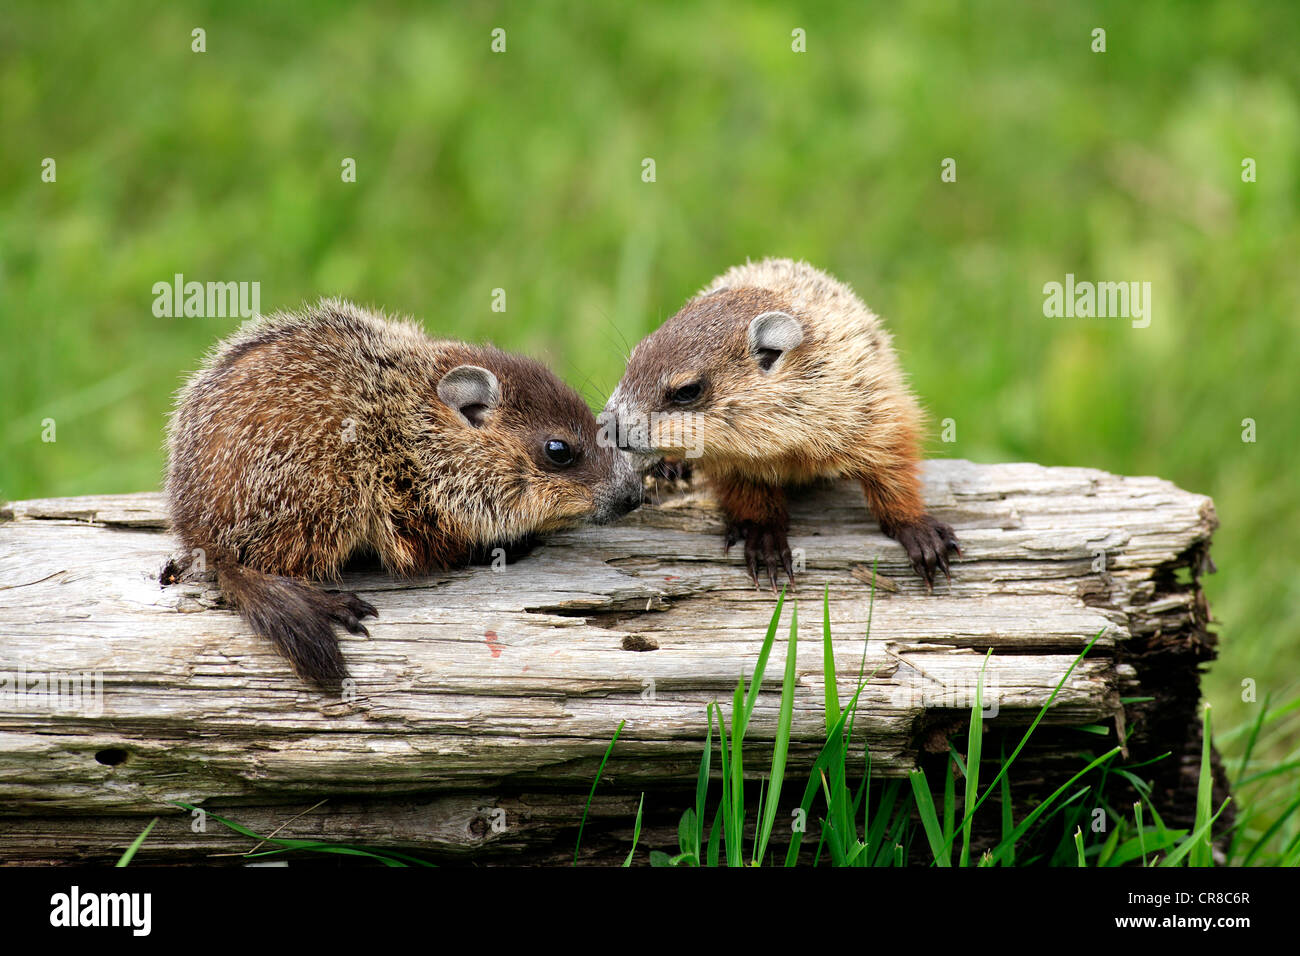 Groundhogs or Woodchucks (Marmota monax), two juveniles, siblings, social behavior, Minnesota, USA - Stock Image